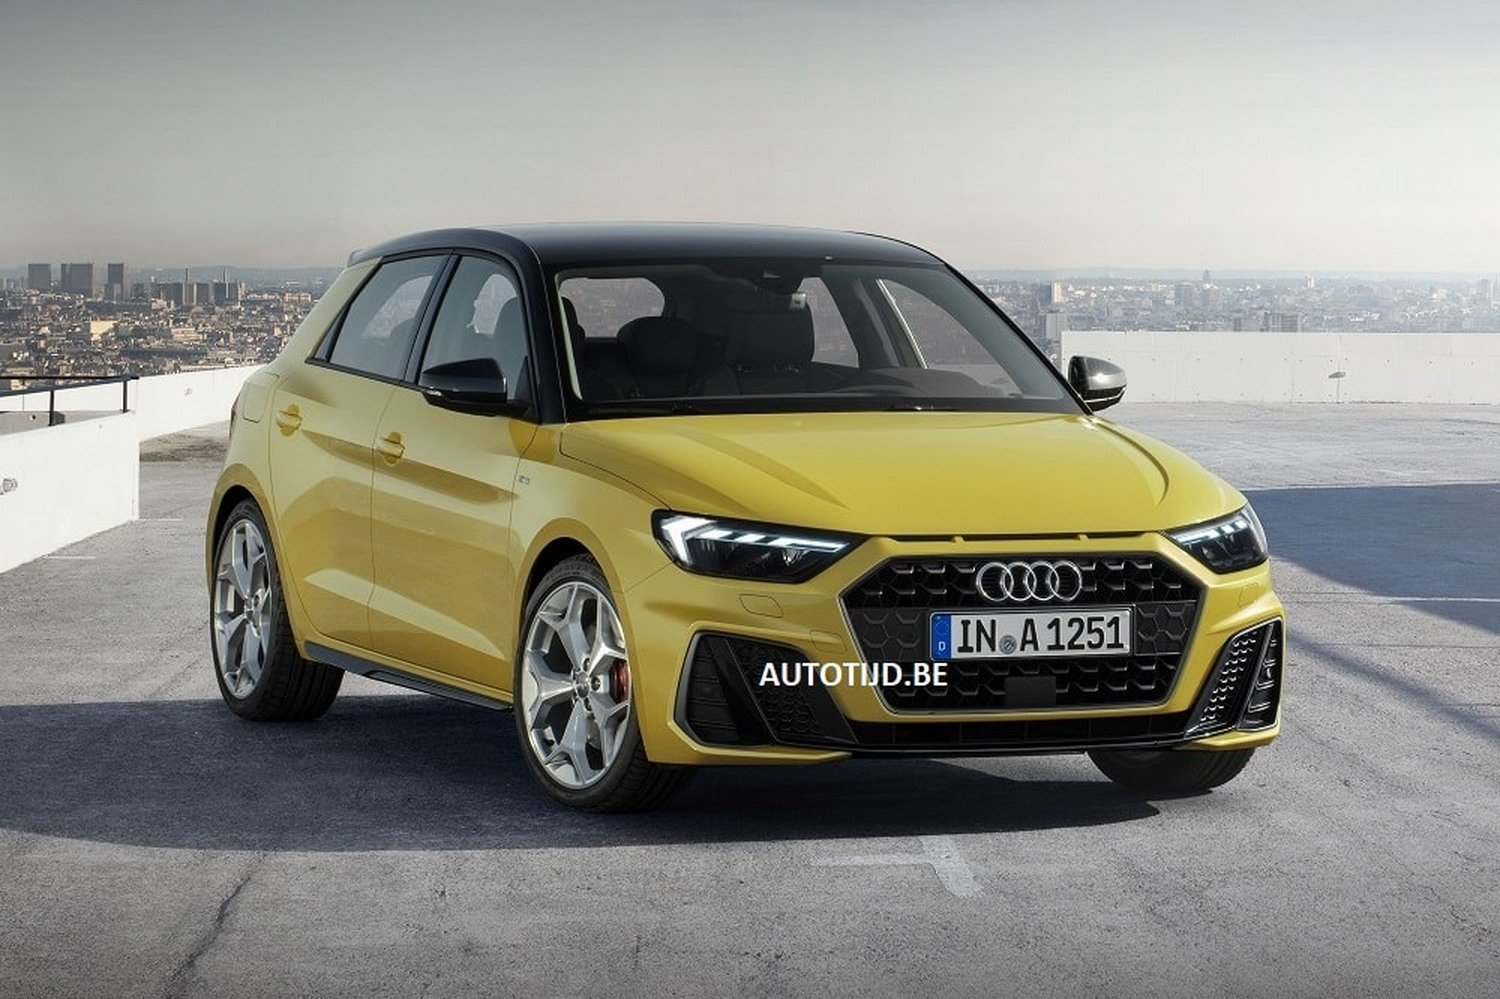 2019 Audi A1 Leaked Official Photos Reveal Sporty Design Autoevolution